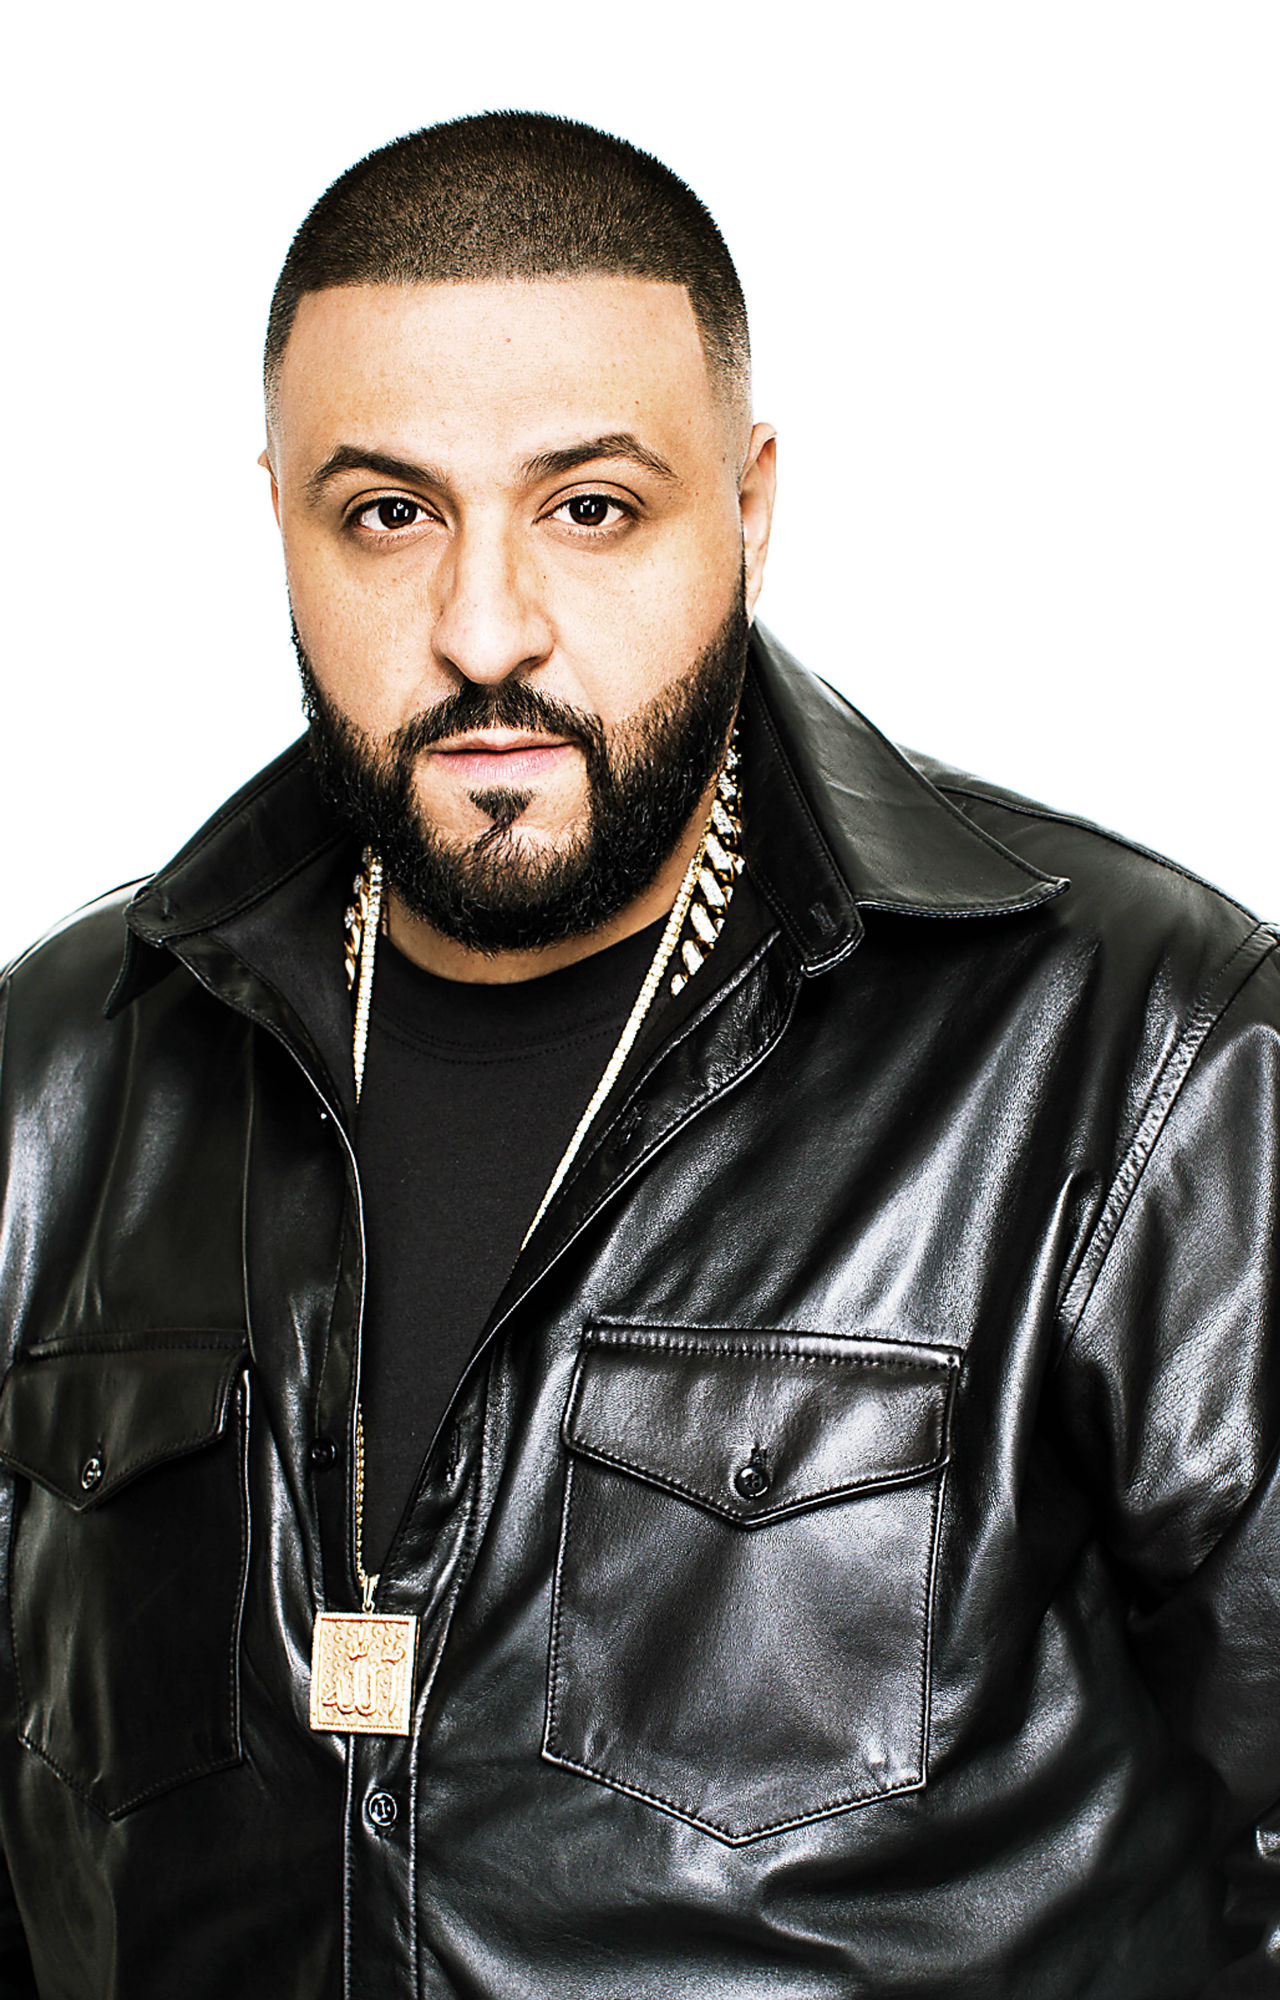 DJ KHALED press photo approved_Clay Patrick McBride-106910400